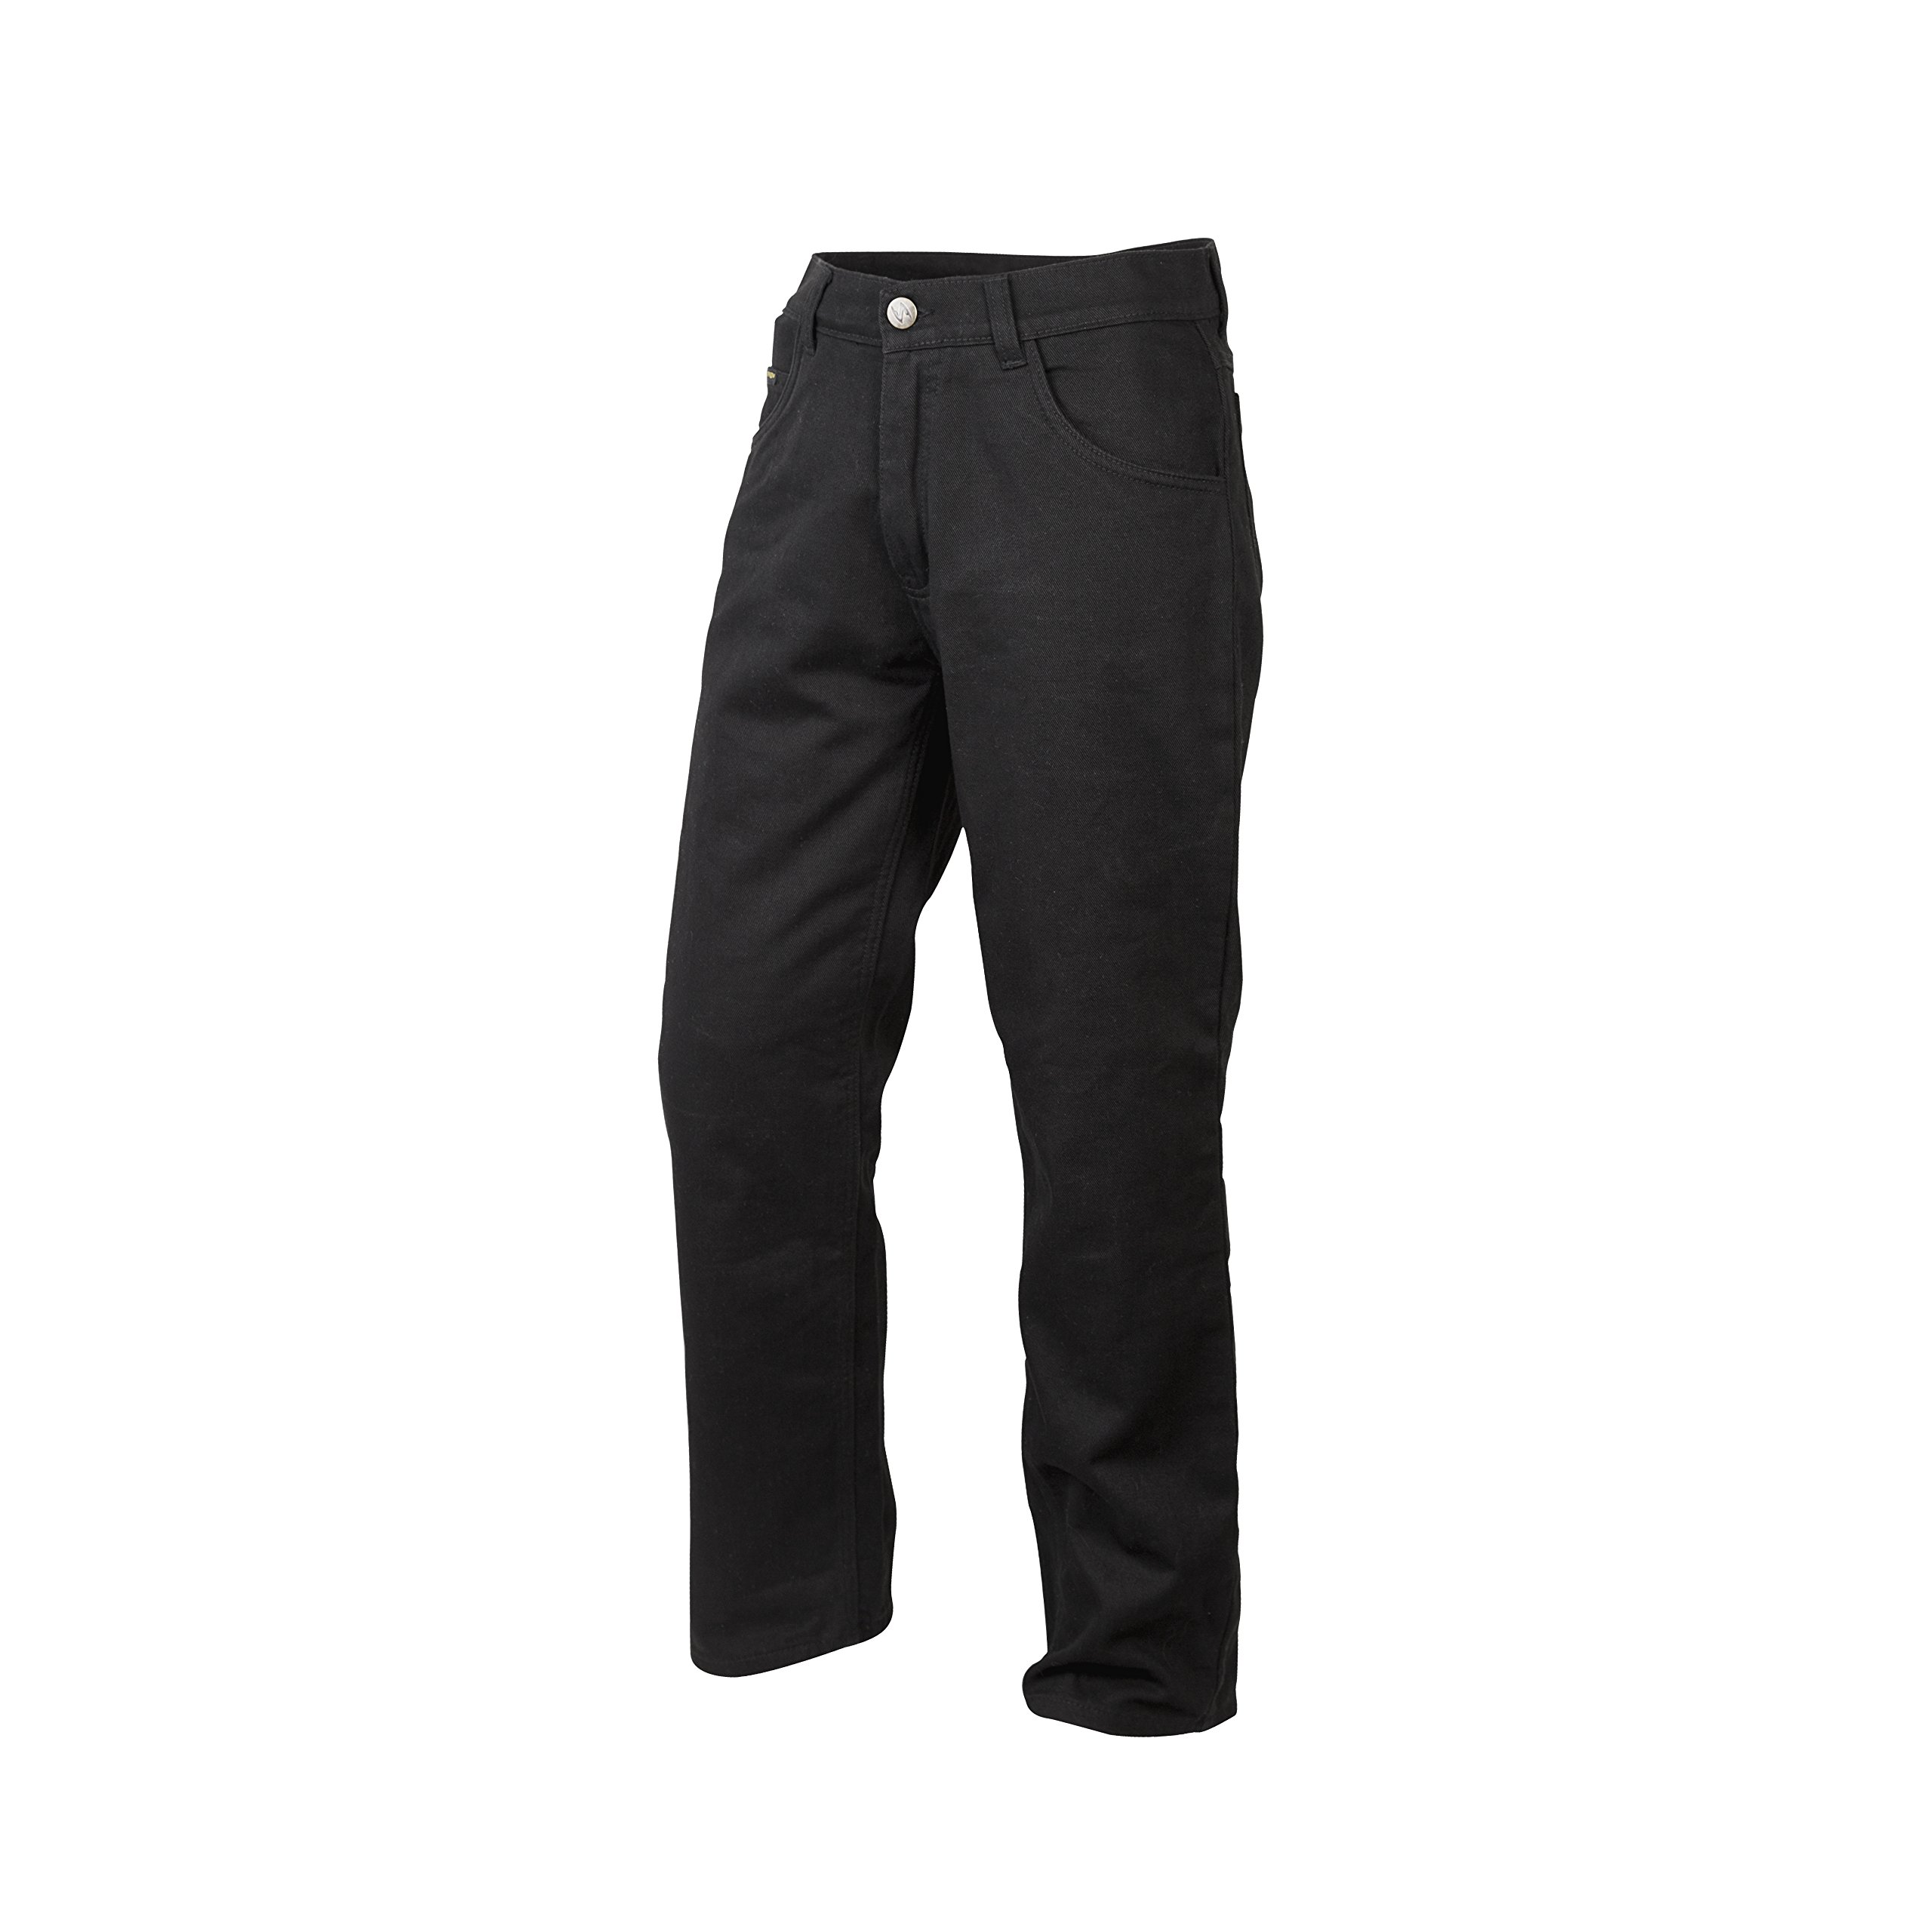 ScorpionExo Covert Jeans Men's Reinforced Motorcycle Pants (Black, Size 38)